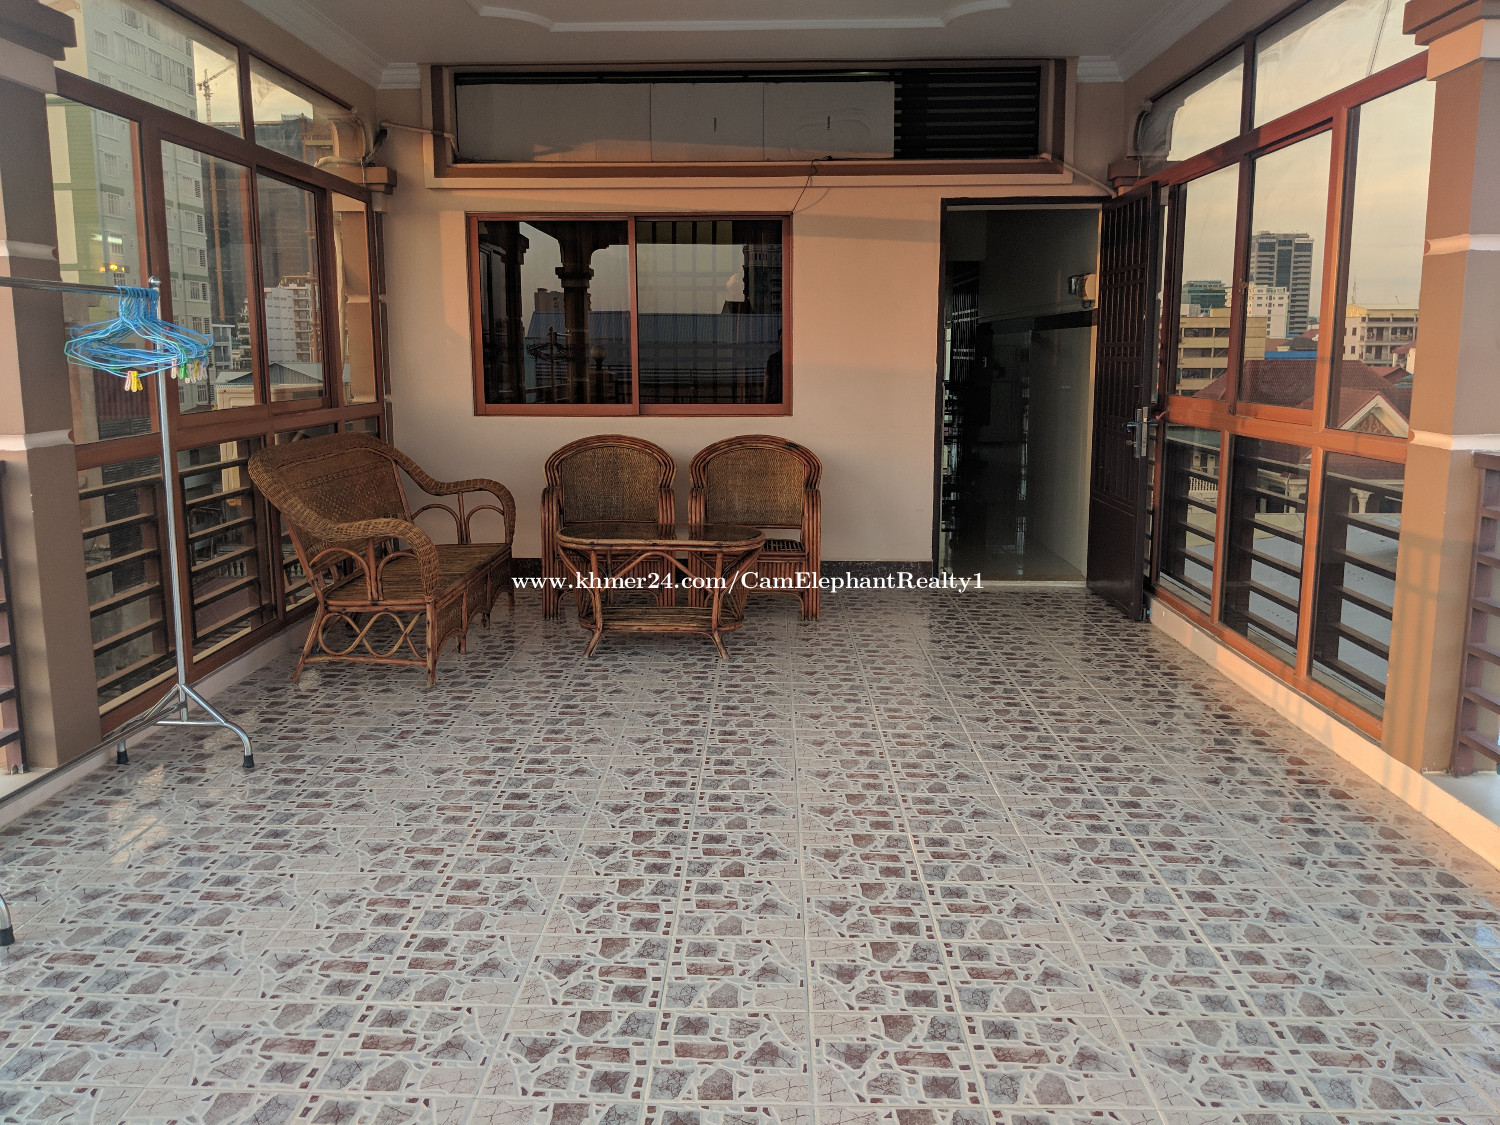 Terrace Western Apartment 1bedroom BKK2 near Monviong blvd $300